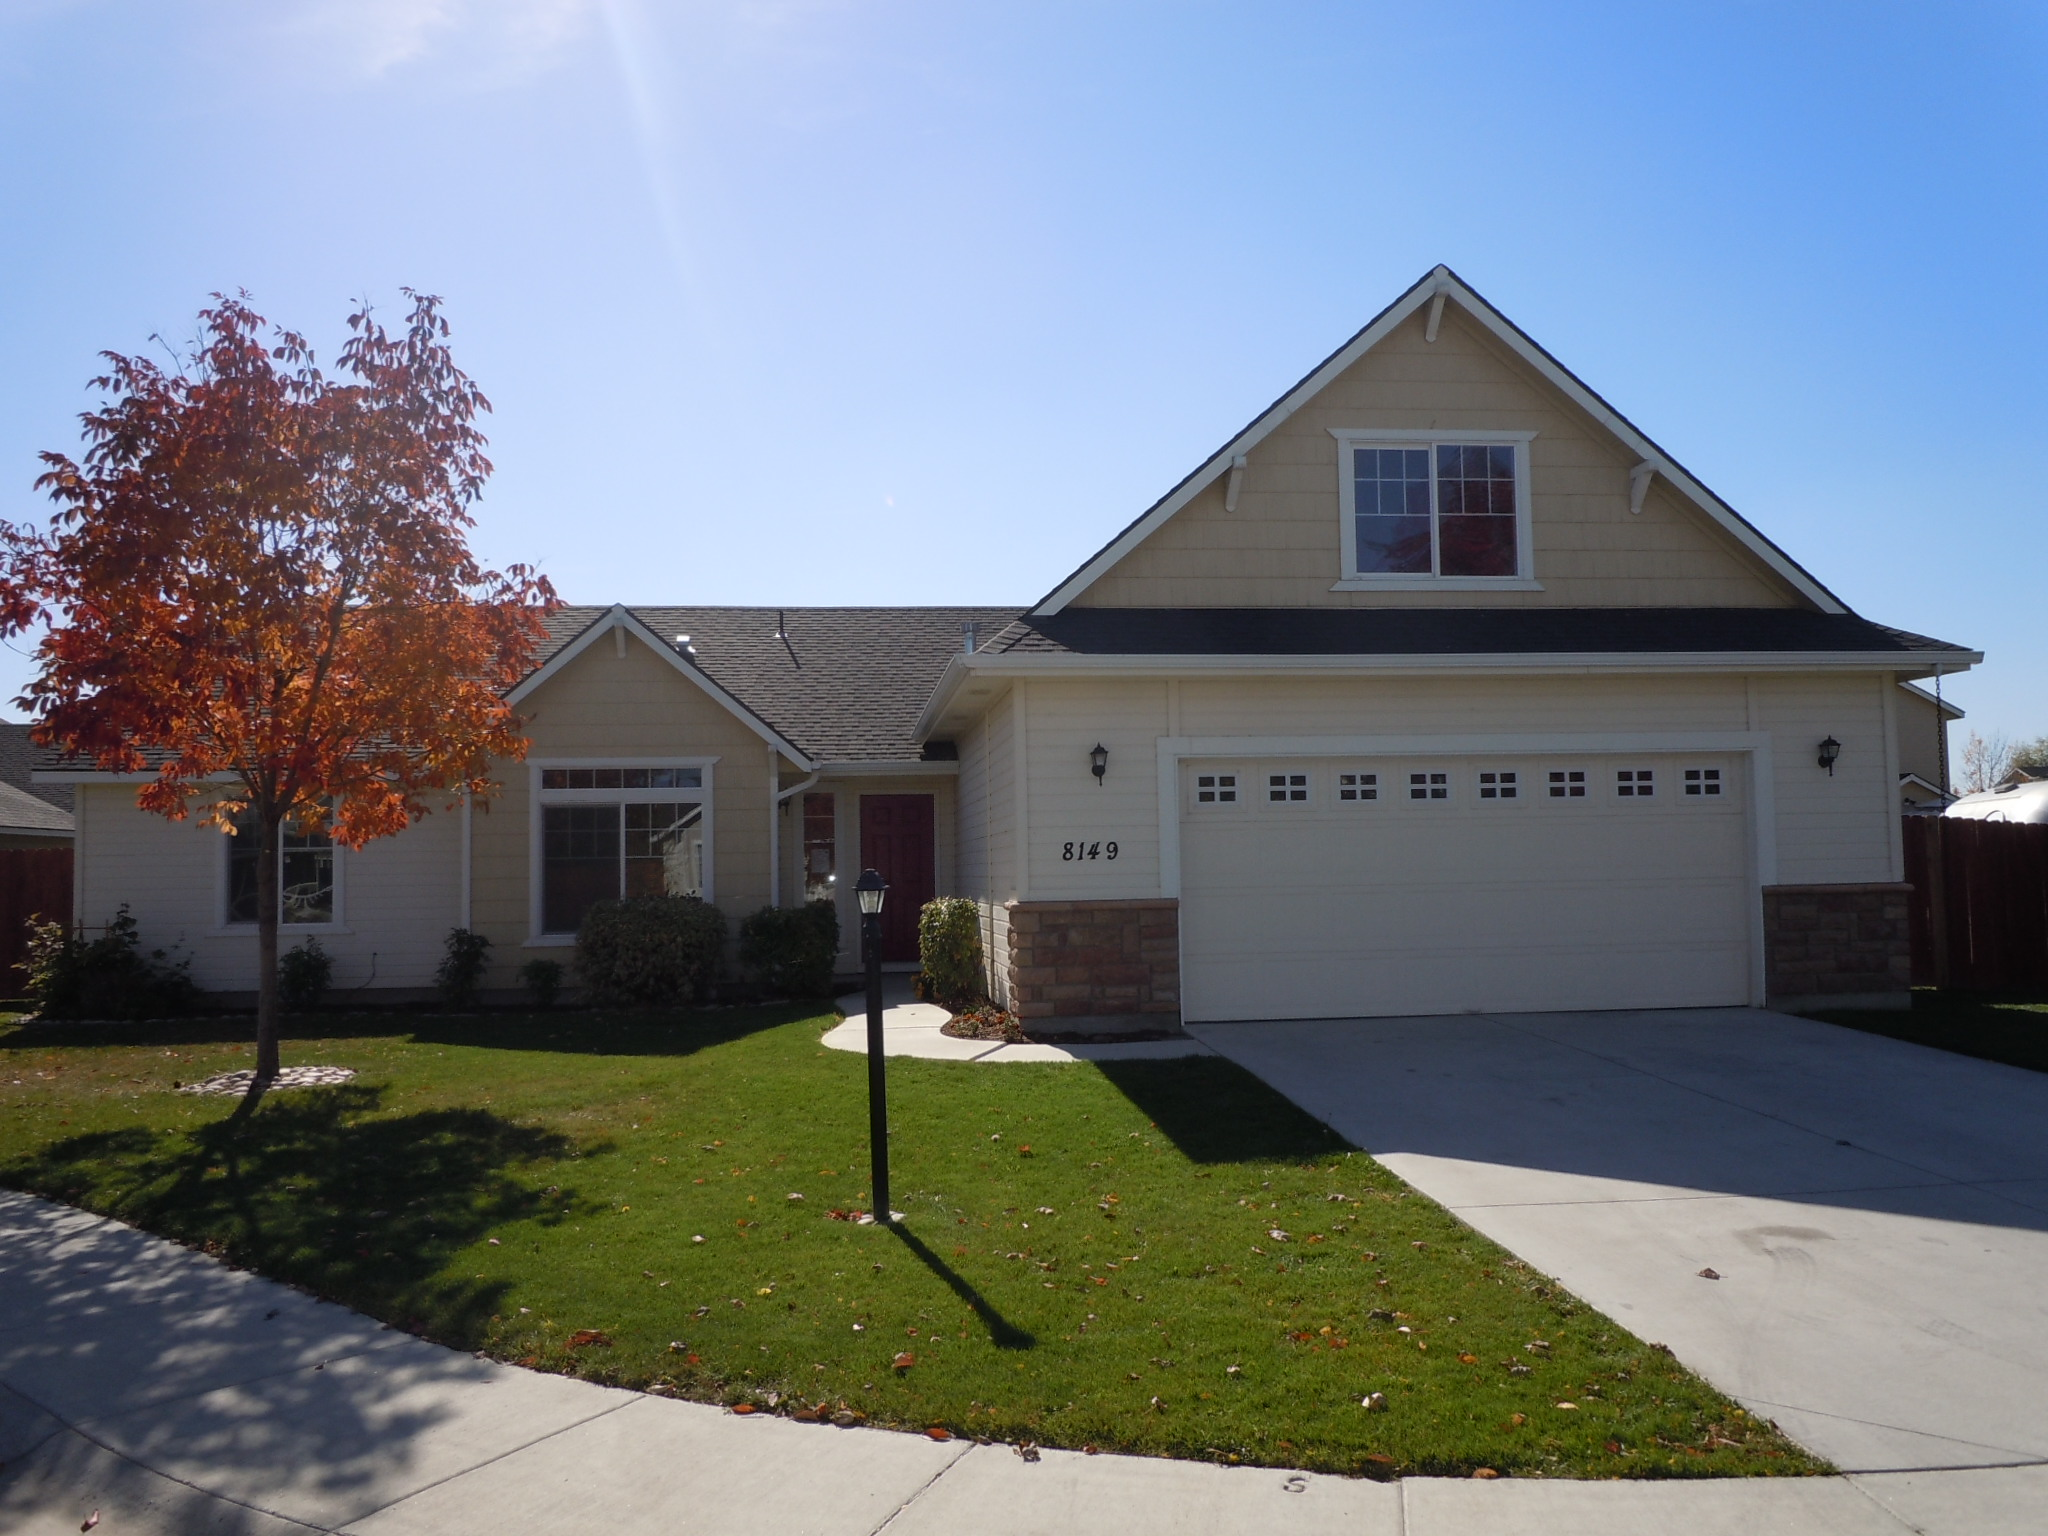 nampa hud home for sale trustidaho